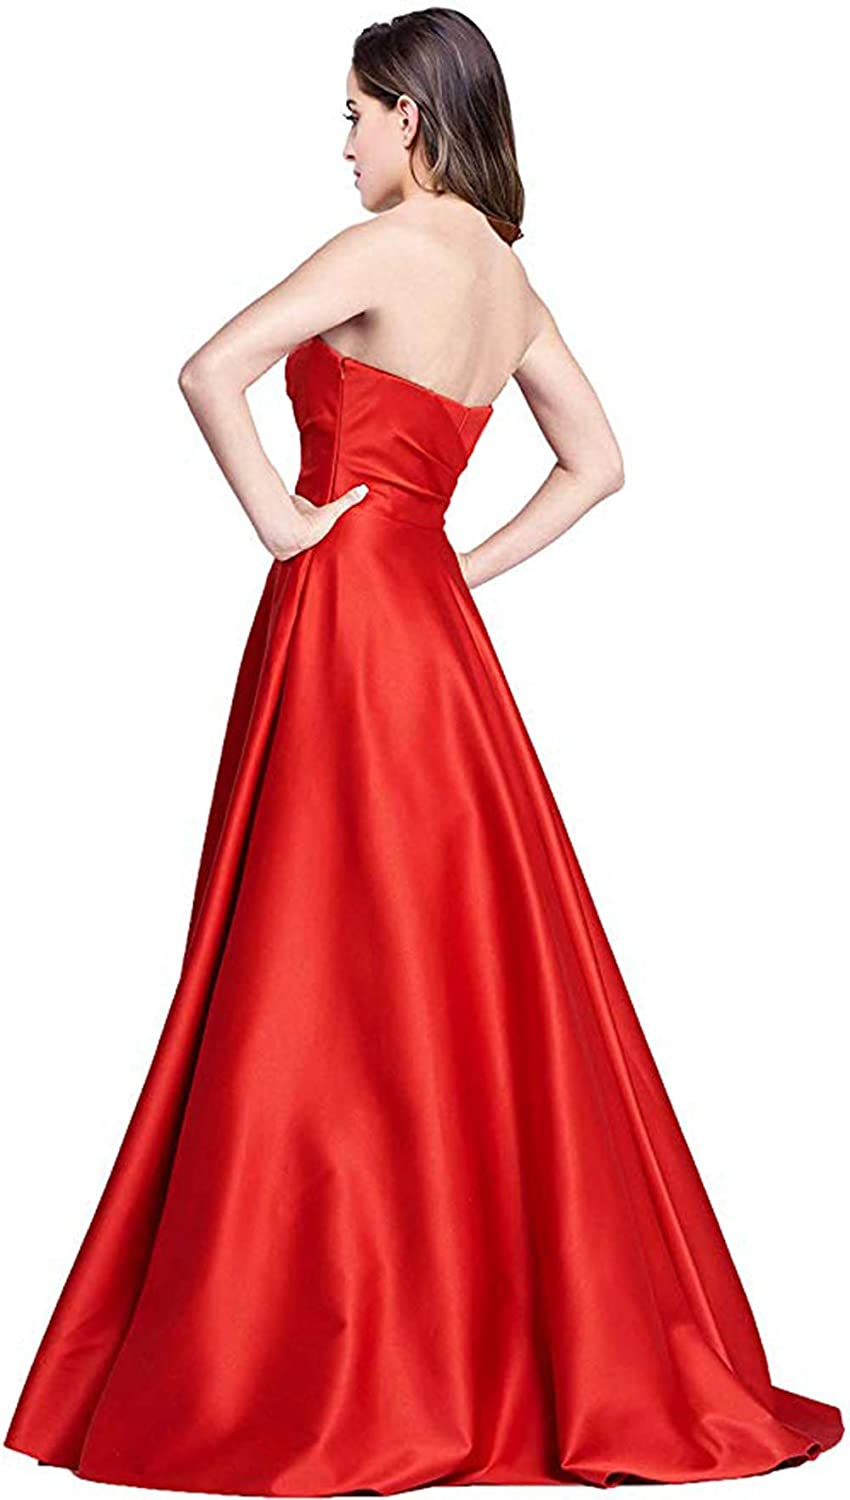 Ri Yun Women s Sweetheart Prom Dresses Long 2019 High Slit Satin Strapless  Formal Evening Ball Gowns with Pockets at Amazon Women s Clothing store  3b98784df